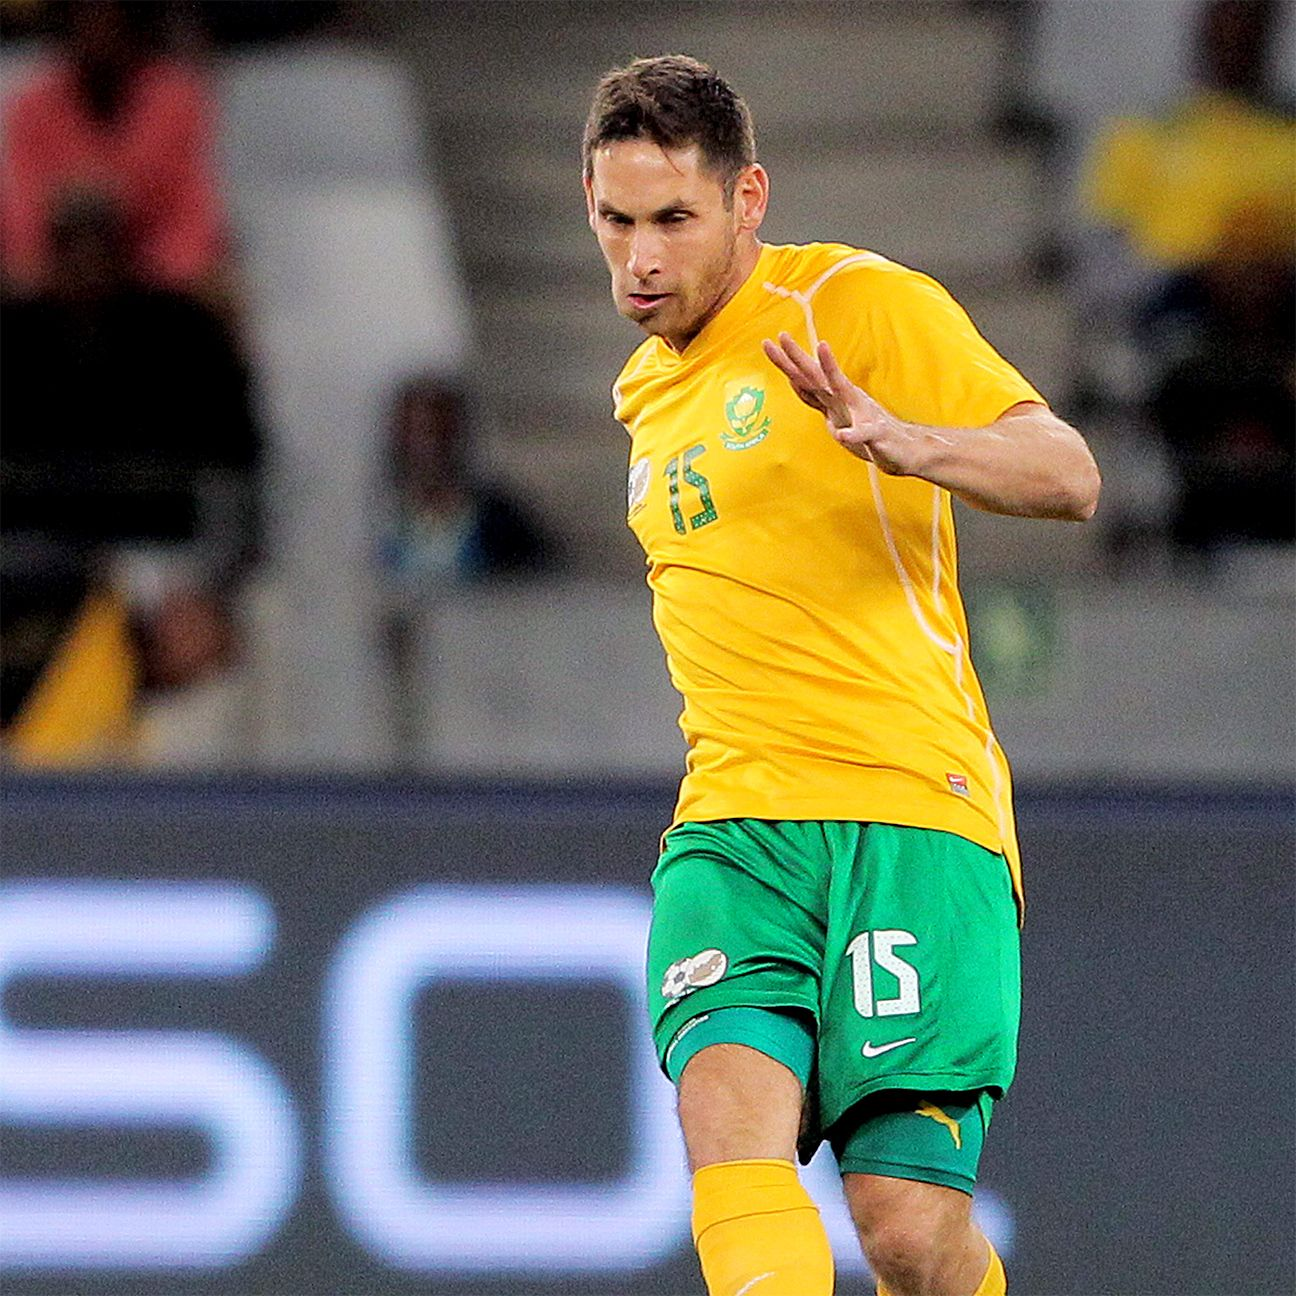 After spending his entire career in the UK, Dean Furman will now ply his trade in his native South Africa.